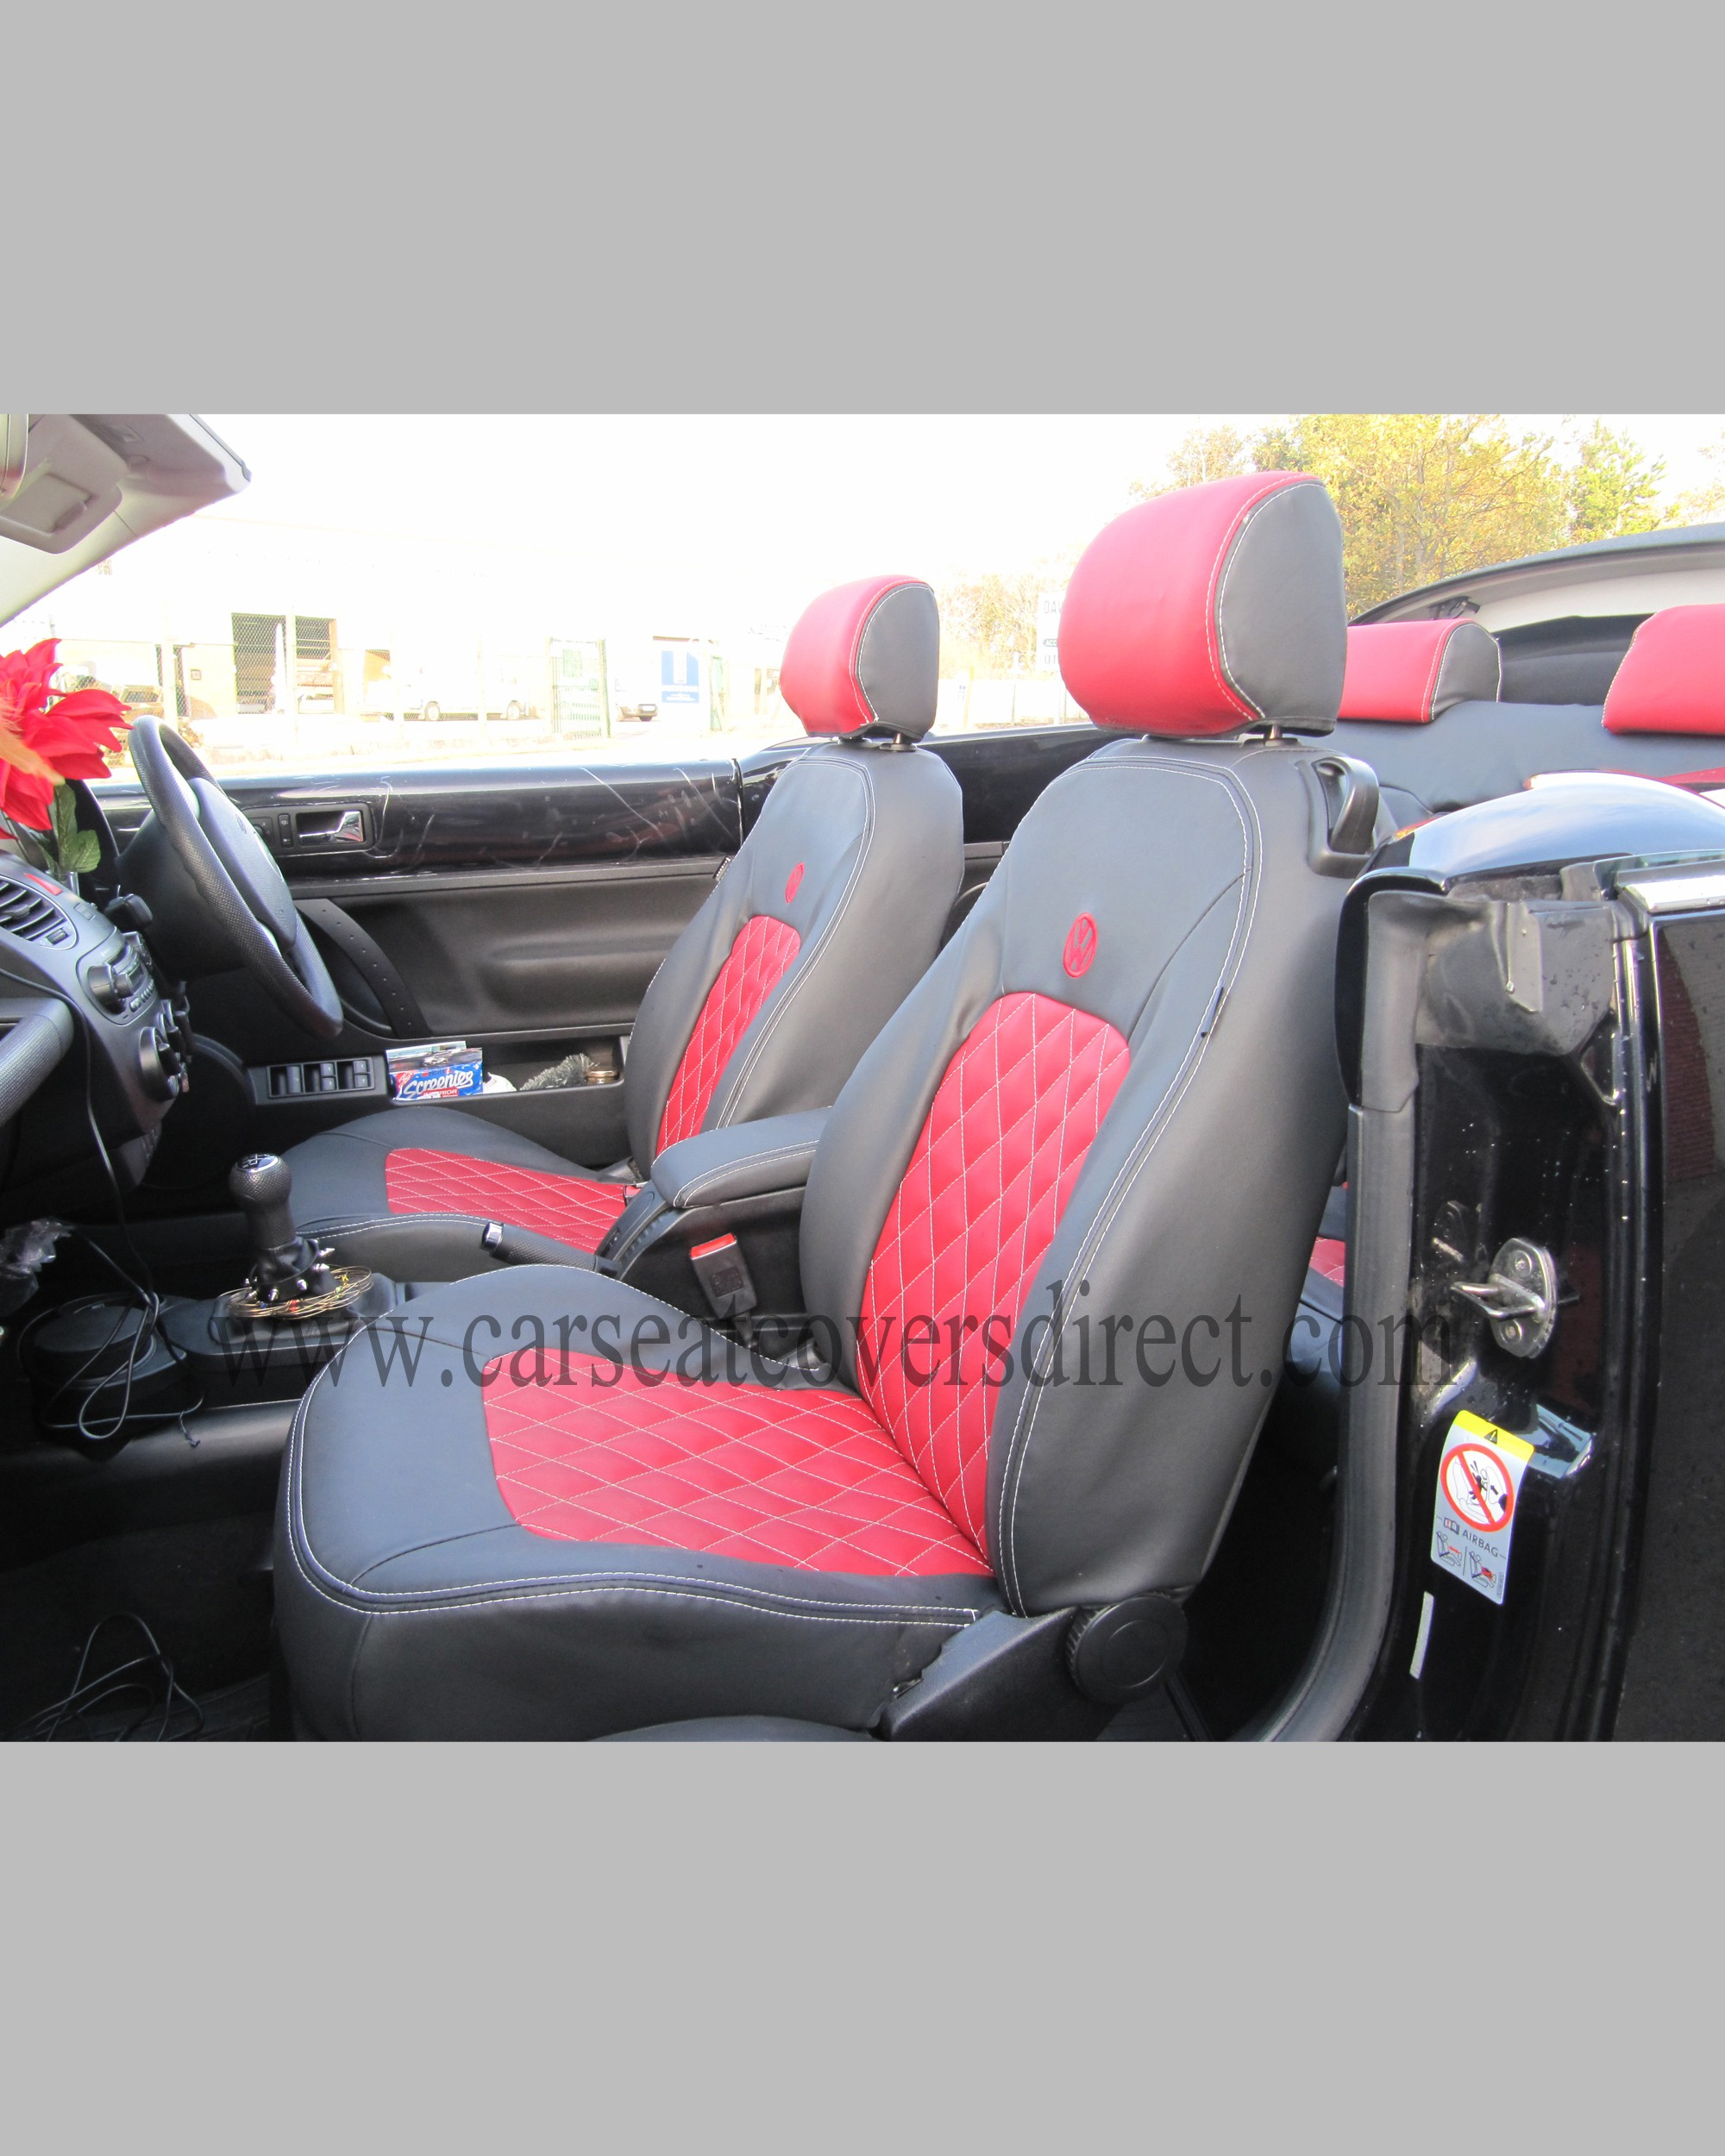 VOLKSWAGEN VW BEETLE Seat Covers Car Seat Covers Direct